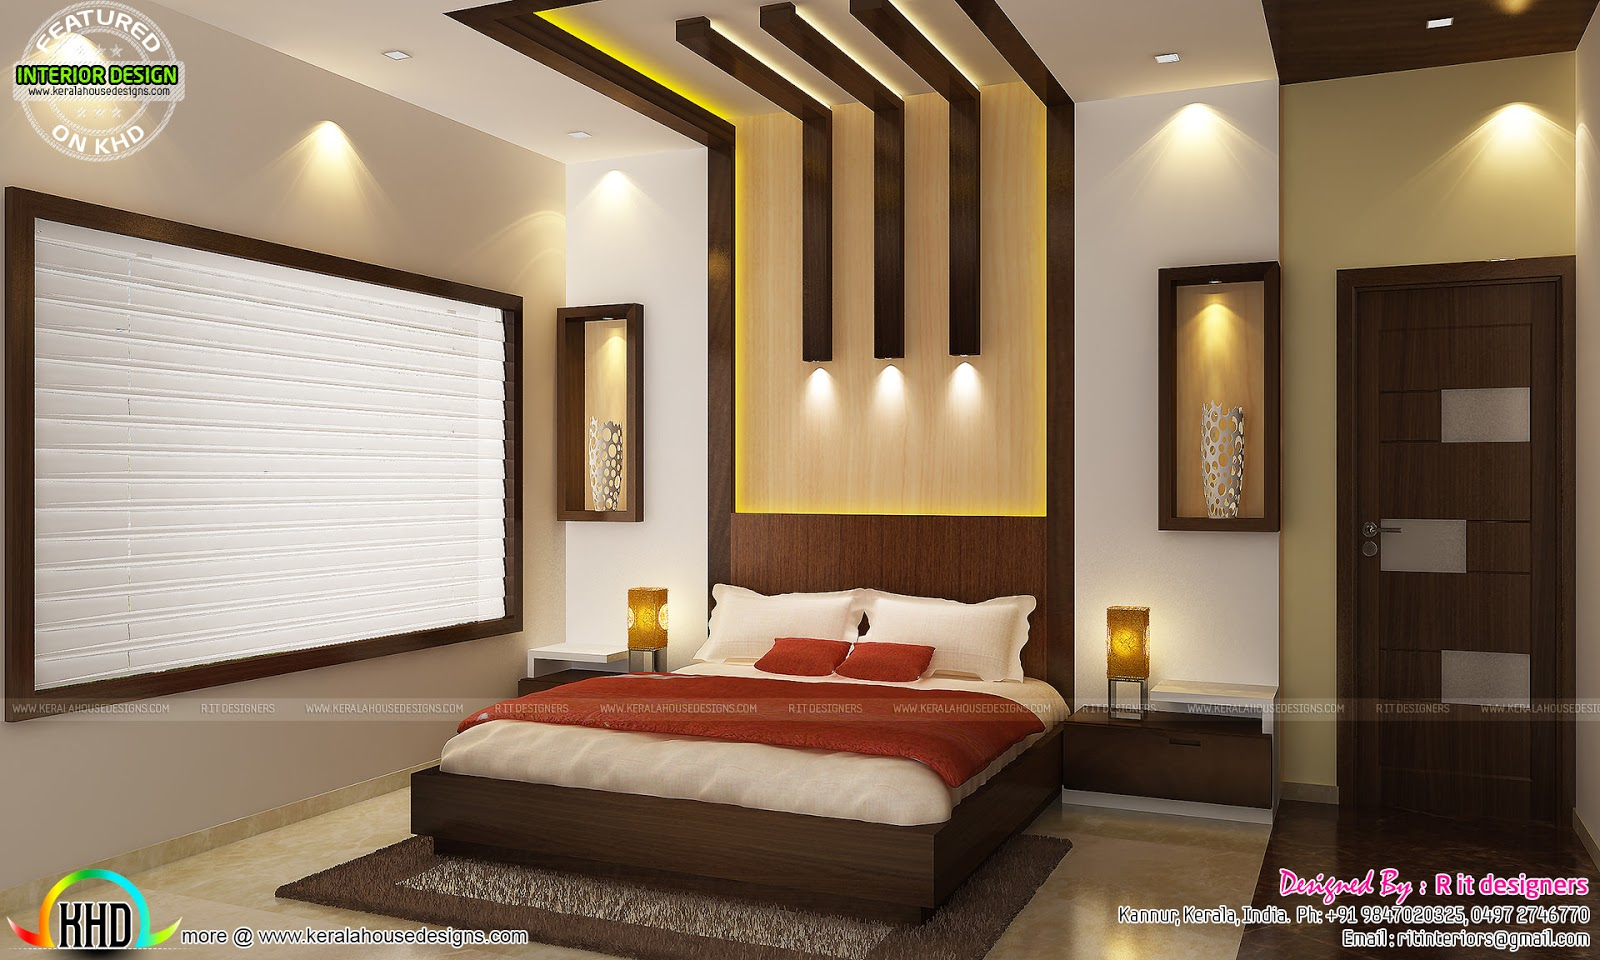 Kitchen living bedroom dining interior decor kerala for Home design ideas interior